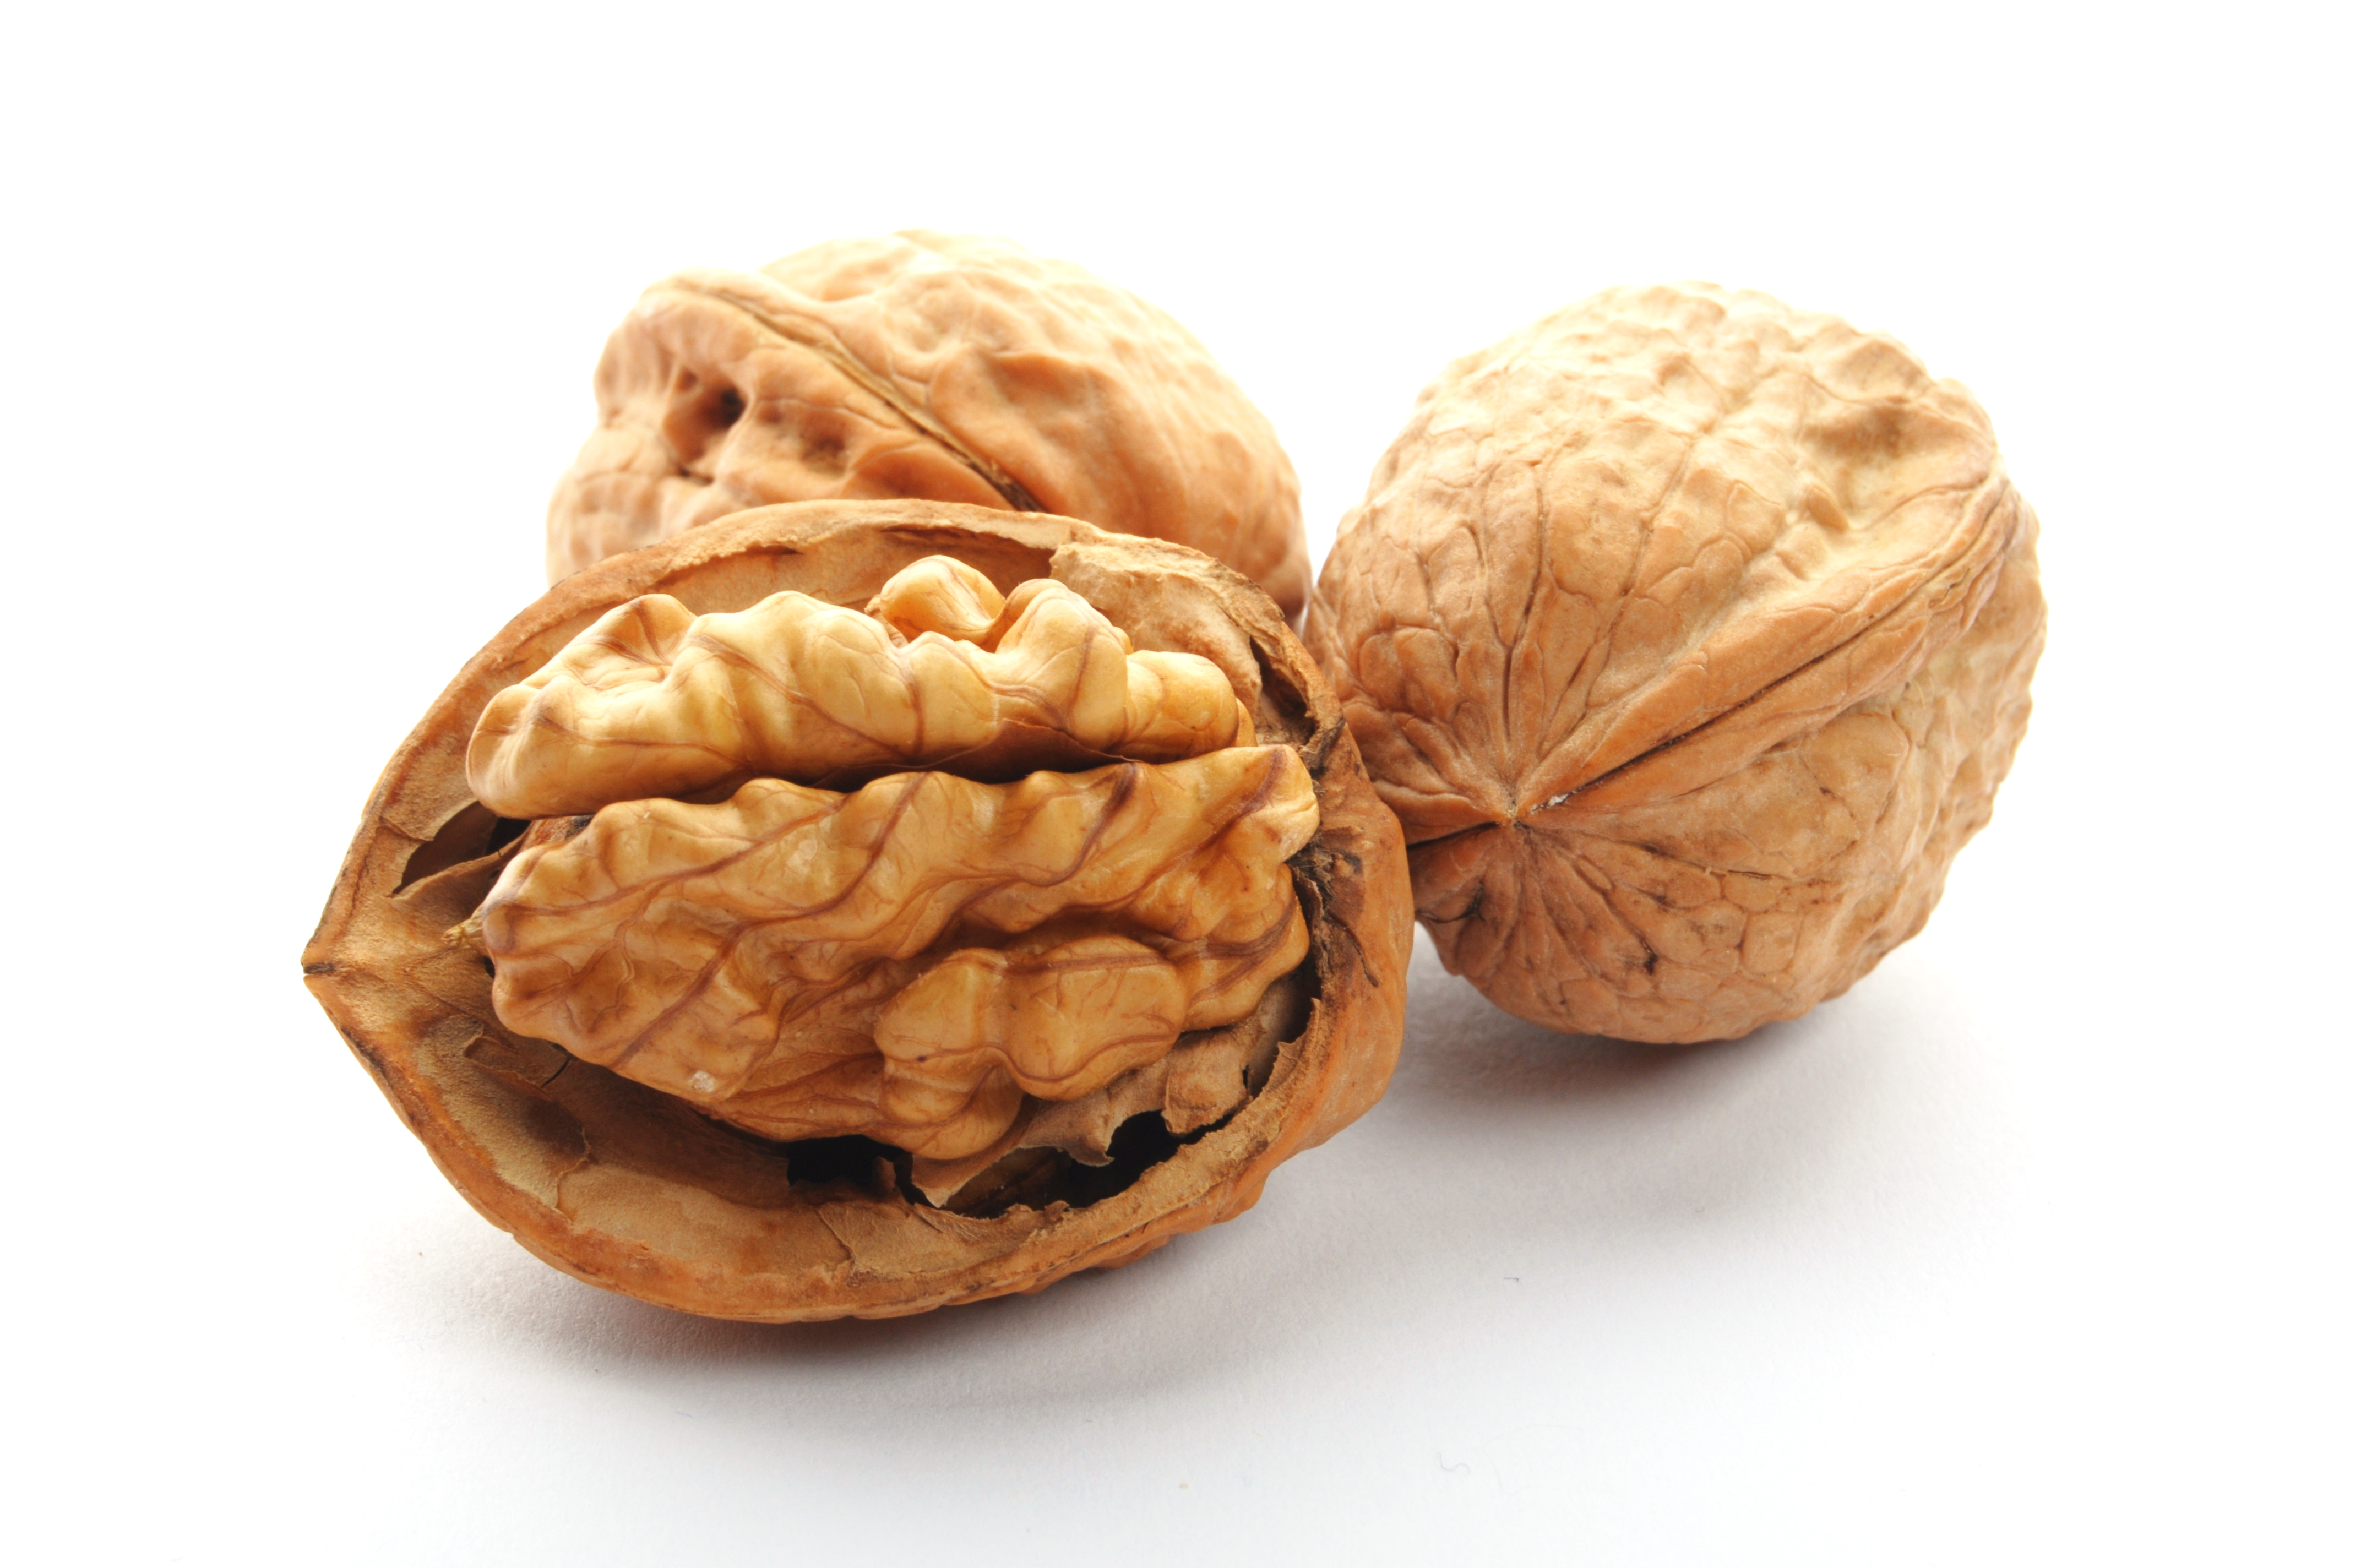 closeup of a walnut